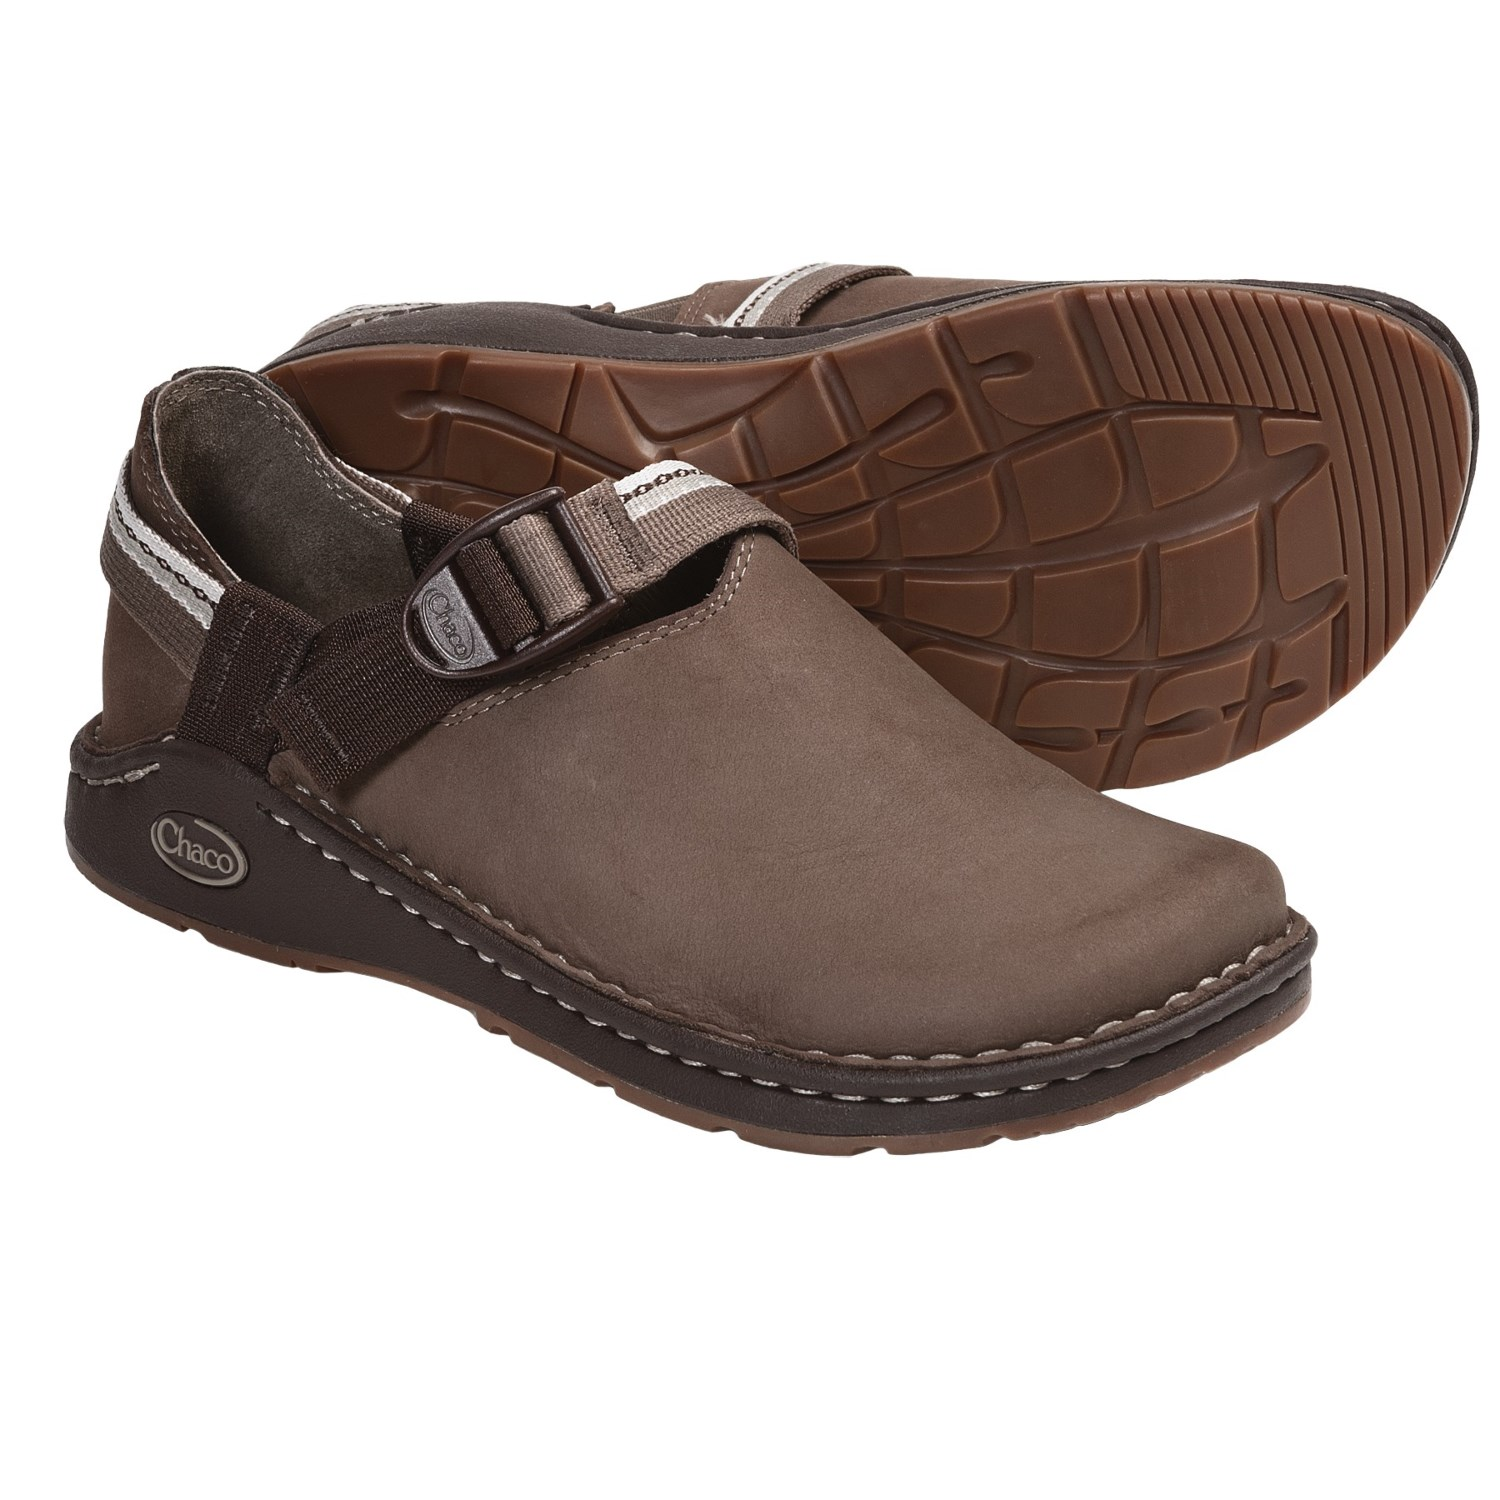 Chaco Pedshed Gunnison Shoes Womens